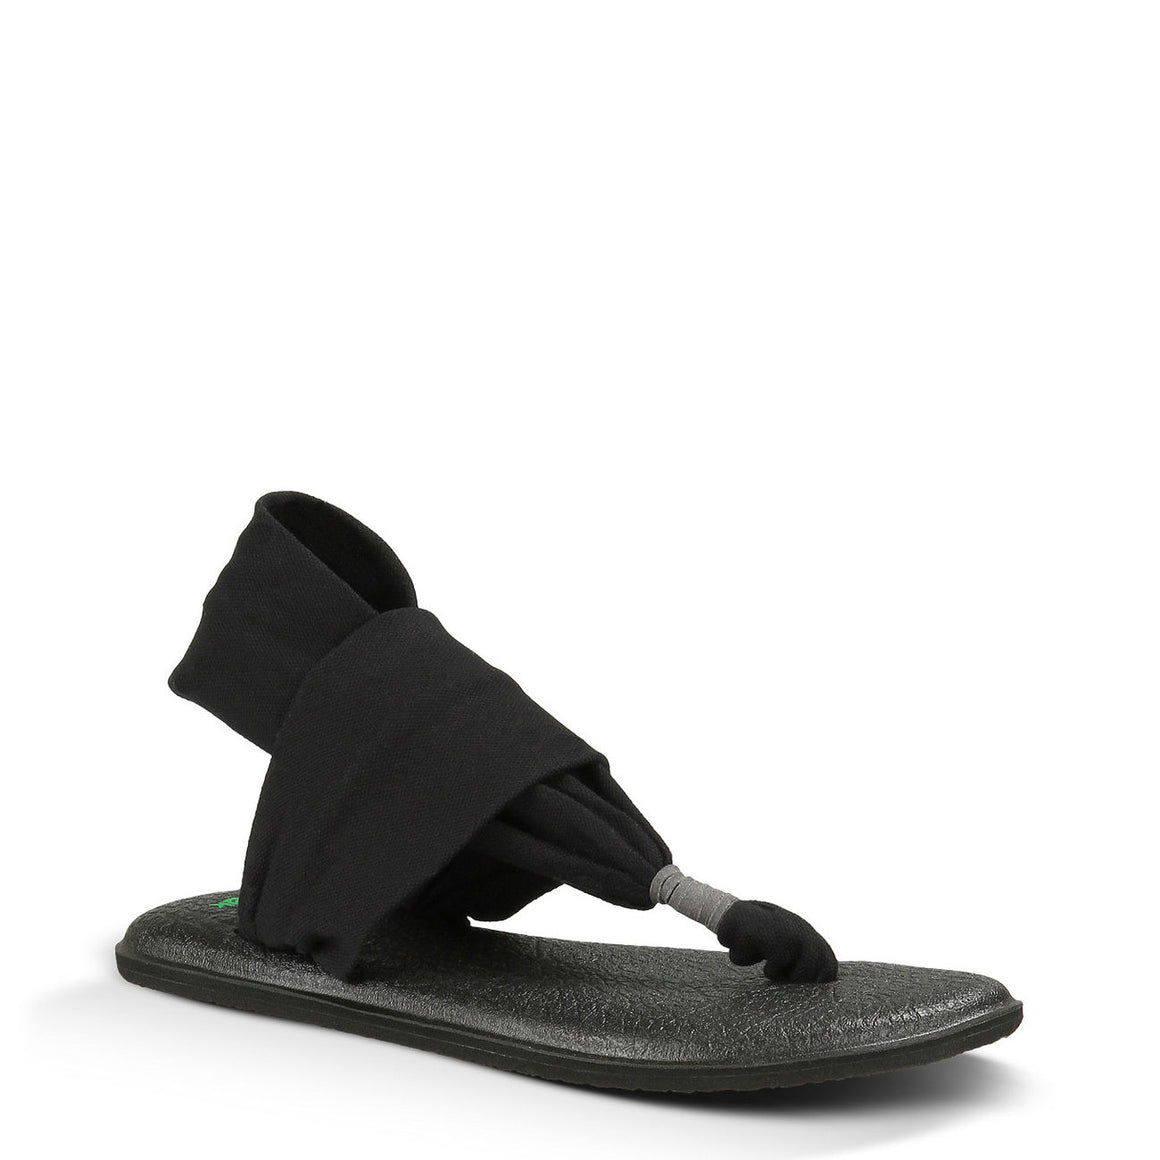 Sanuk Women's Yoga Sling 2 - Black SWS10001 - ShoeShackOnline